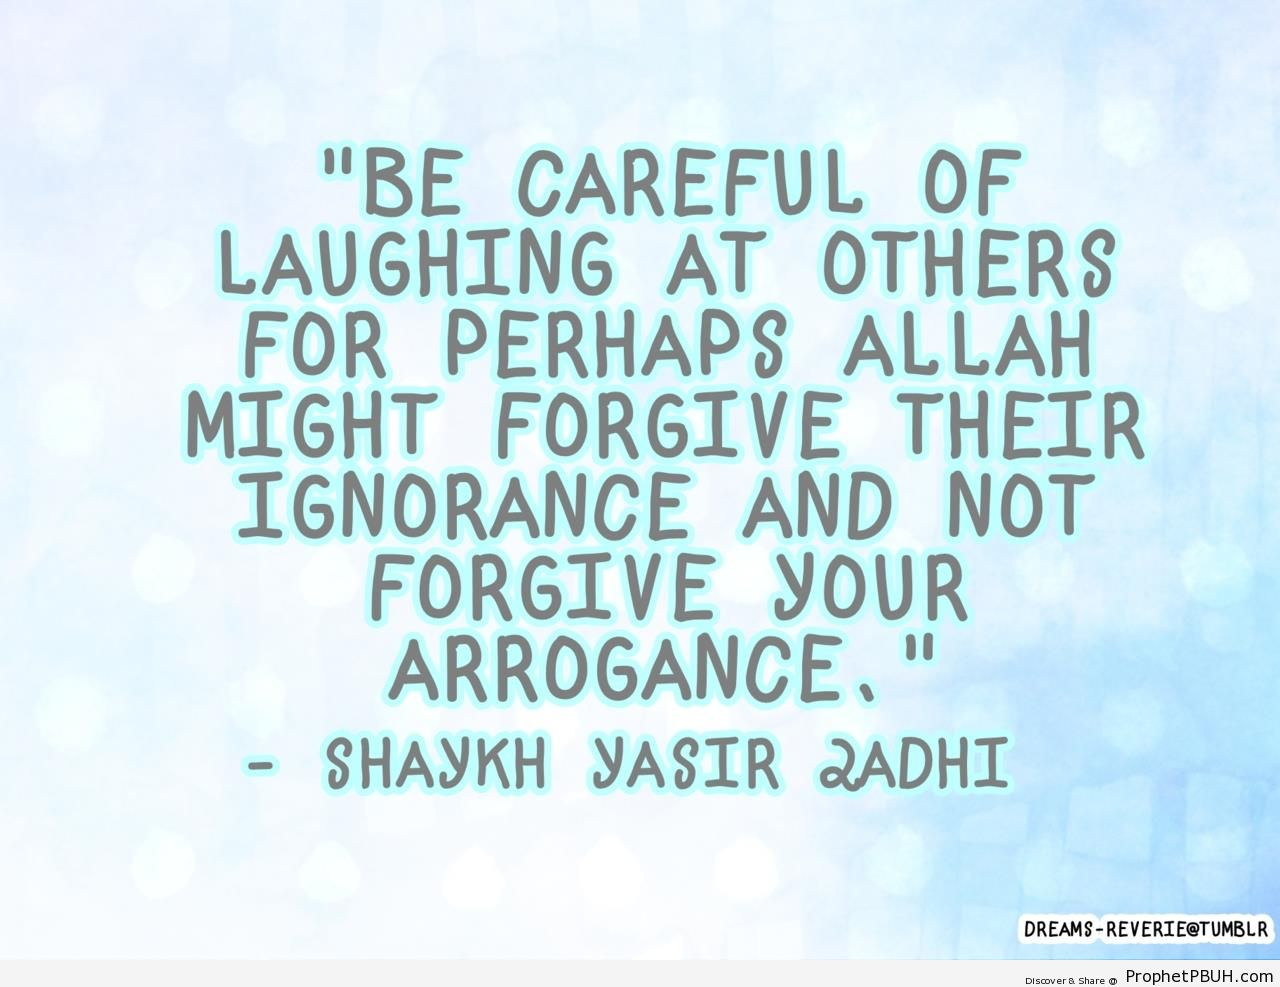 Quotes by Muslim Speakers (5)